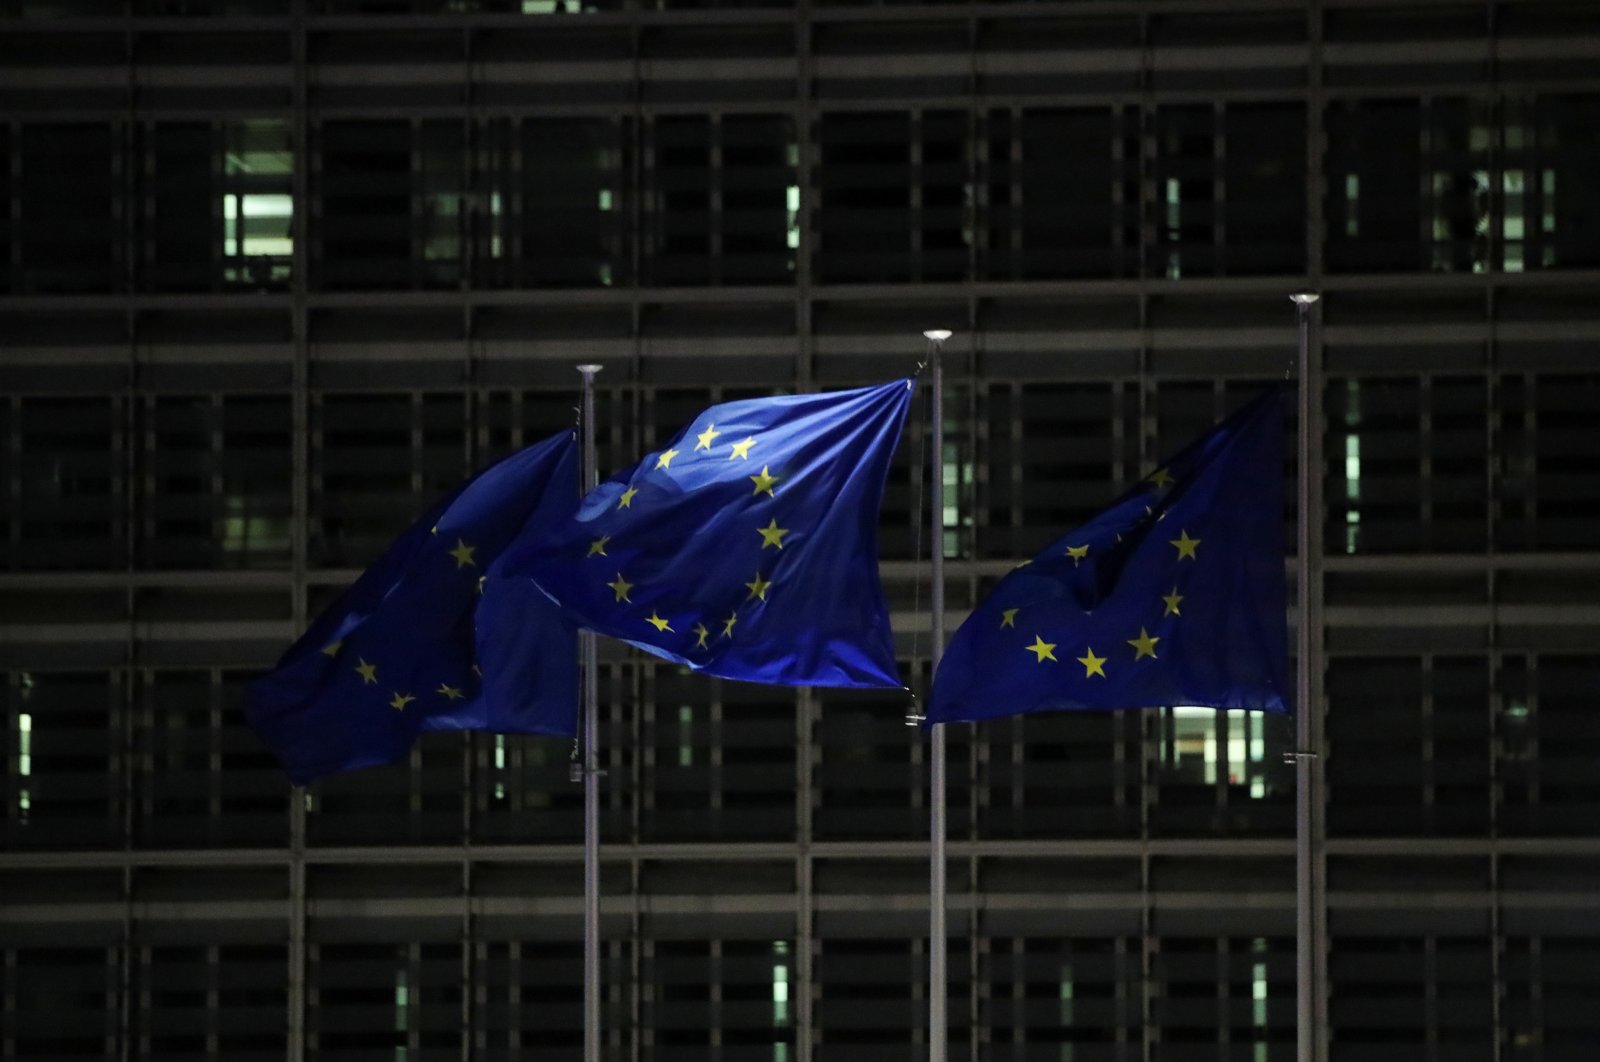 European Union flags flutter outside the European Commission headquarters during an EU leaders summit at the European Council headquarters, in Brussels, Belgium, Dec. 10, 2020. (Reuters Photo)